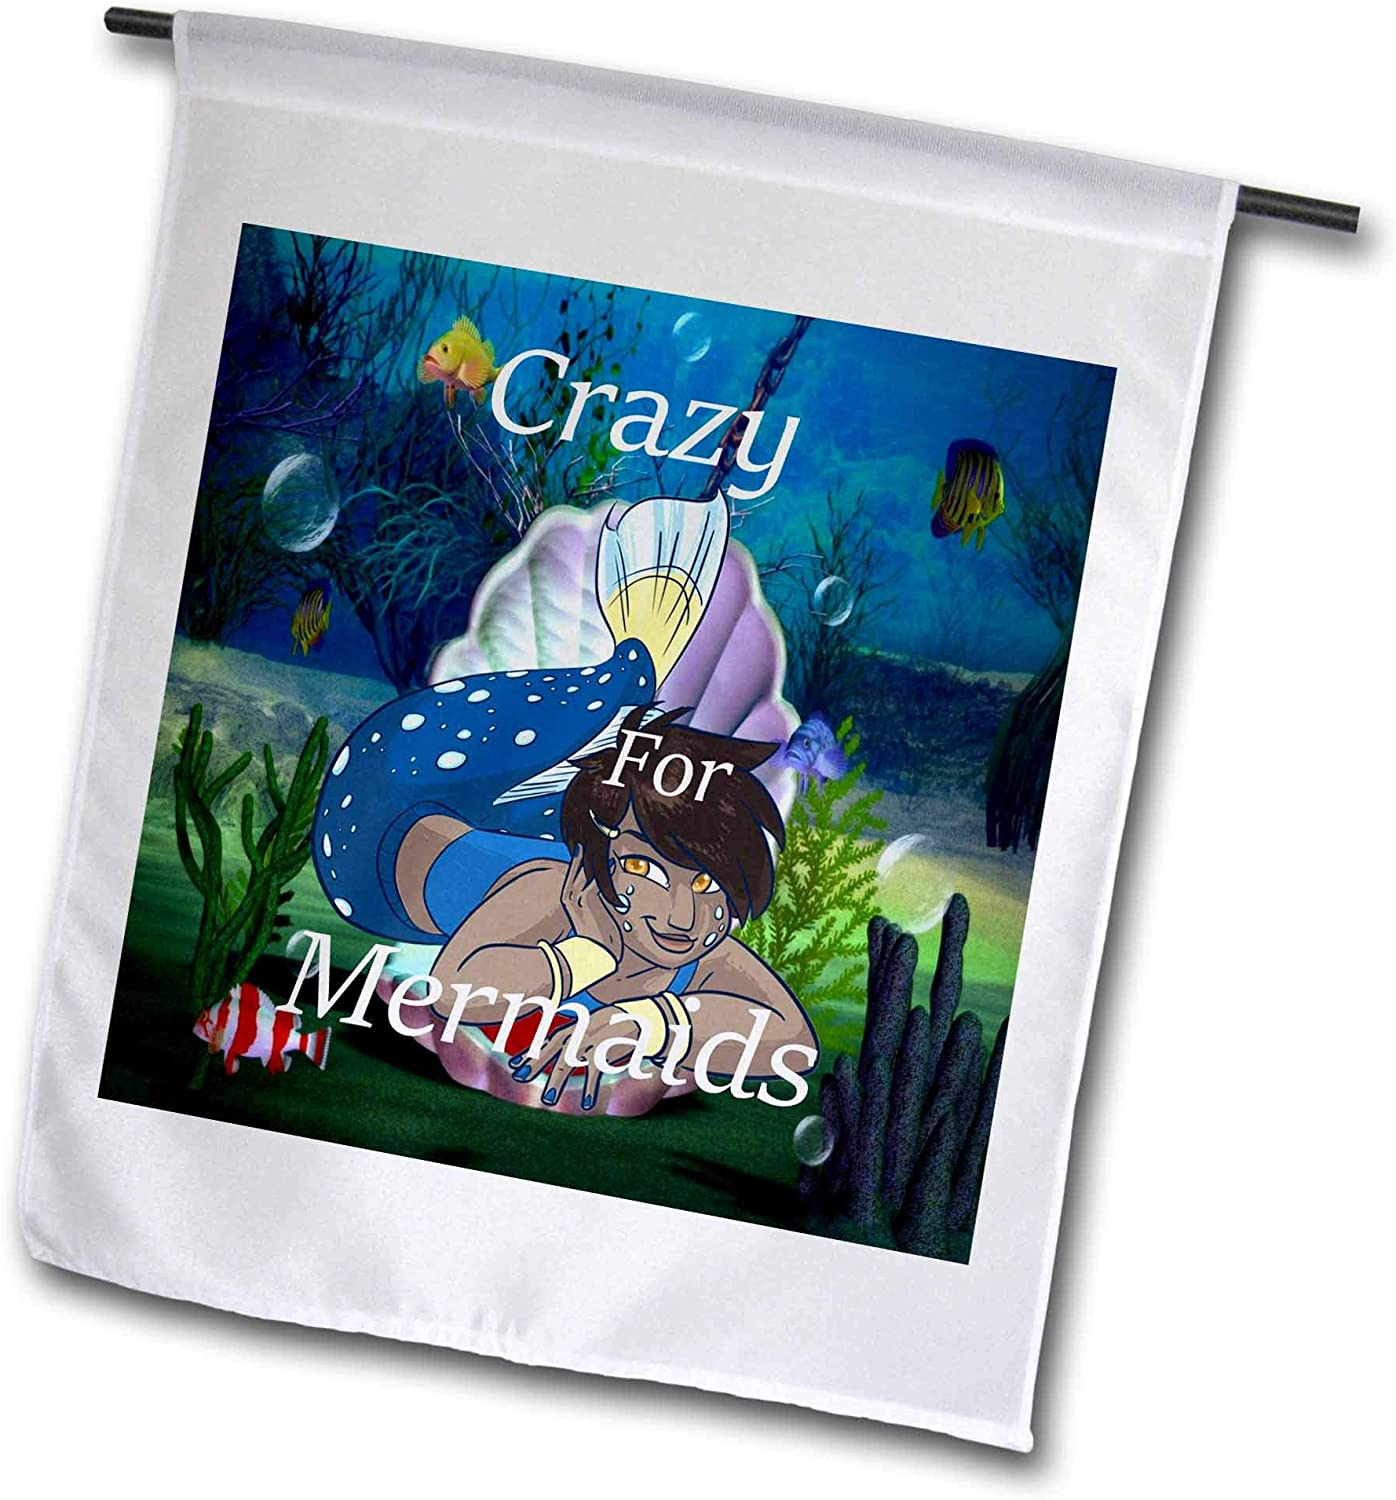 3dRose Lens Art by Florene - Crazy for Mermaid N Fairies - Image of Words Crazy for Mermaids with African American Mermaid - 12 x 18 inch Garden Flag (fl_310633_1)